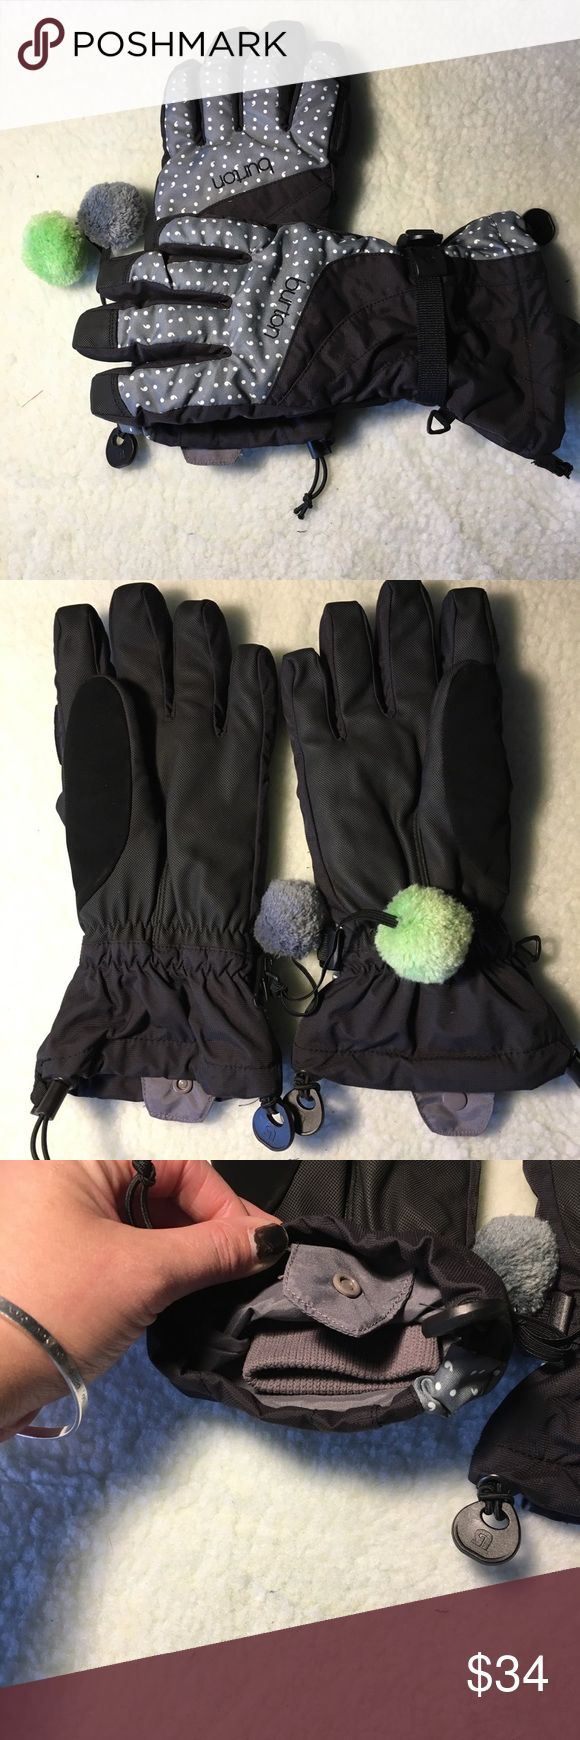 Burton Pom Pom polka dot snowboard gloves EUC medium burton snowboarding gloves with Pom Poms and polka dots. Has snap closure to secure to jacket with ribbed inner glove- super warm. Make offer free gift with purchase bundle and save Burton Accessories Gloves & Mittens